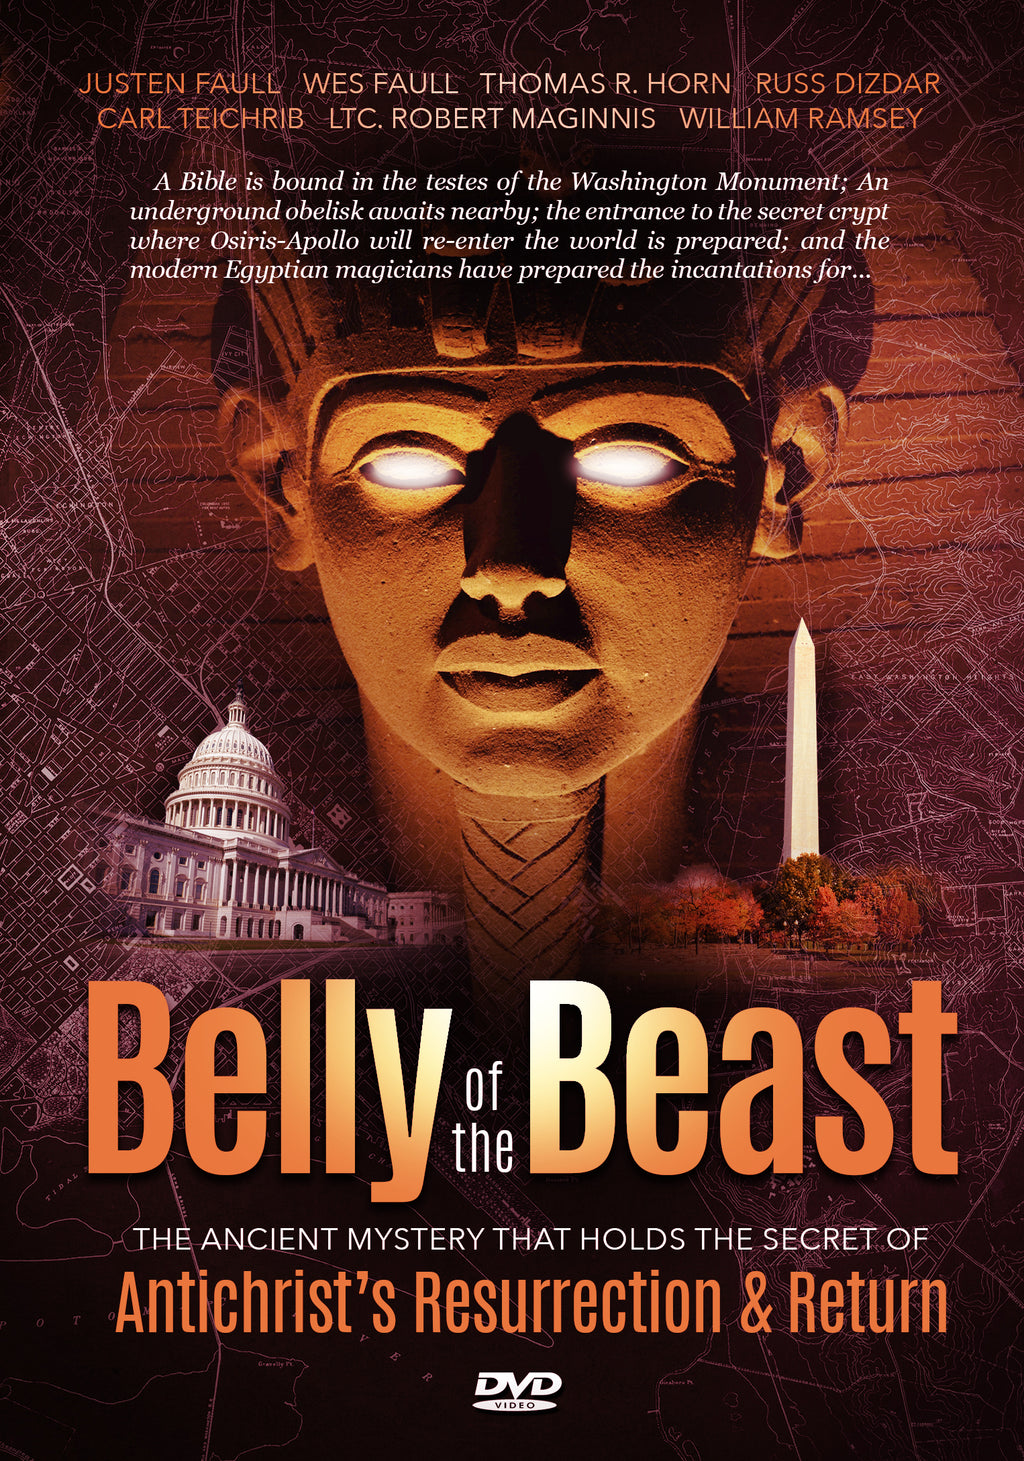 BELLY OF THE BEAST: THE ANCIENT MYSTERY THAT HOLDS THE SECRET OF ANTICRIST'S RESURRECTION AND RETURN